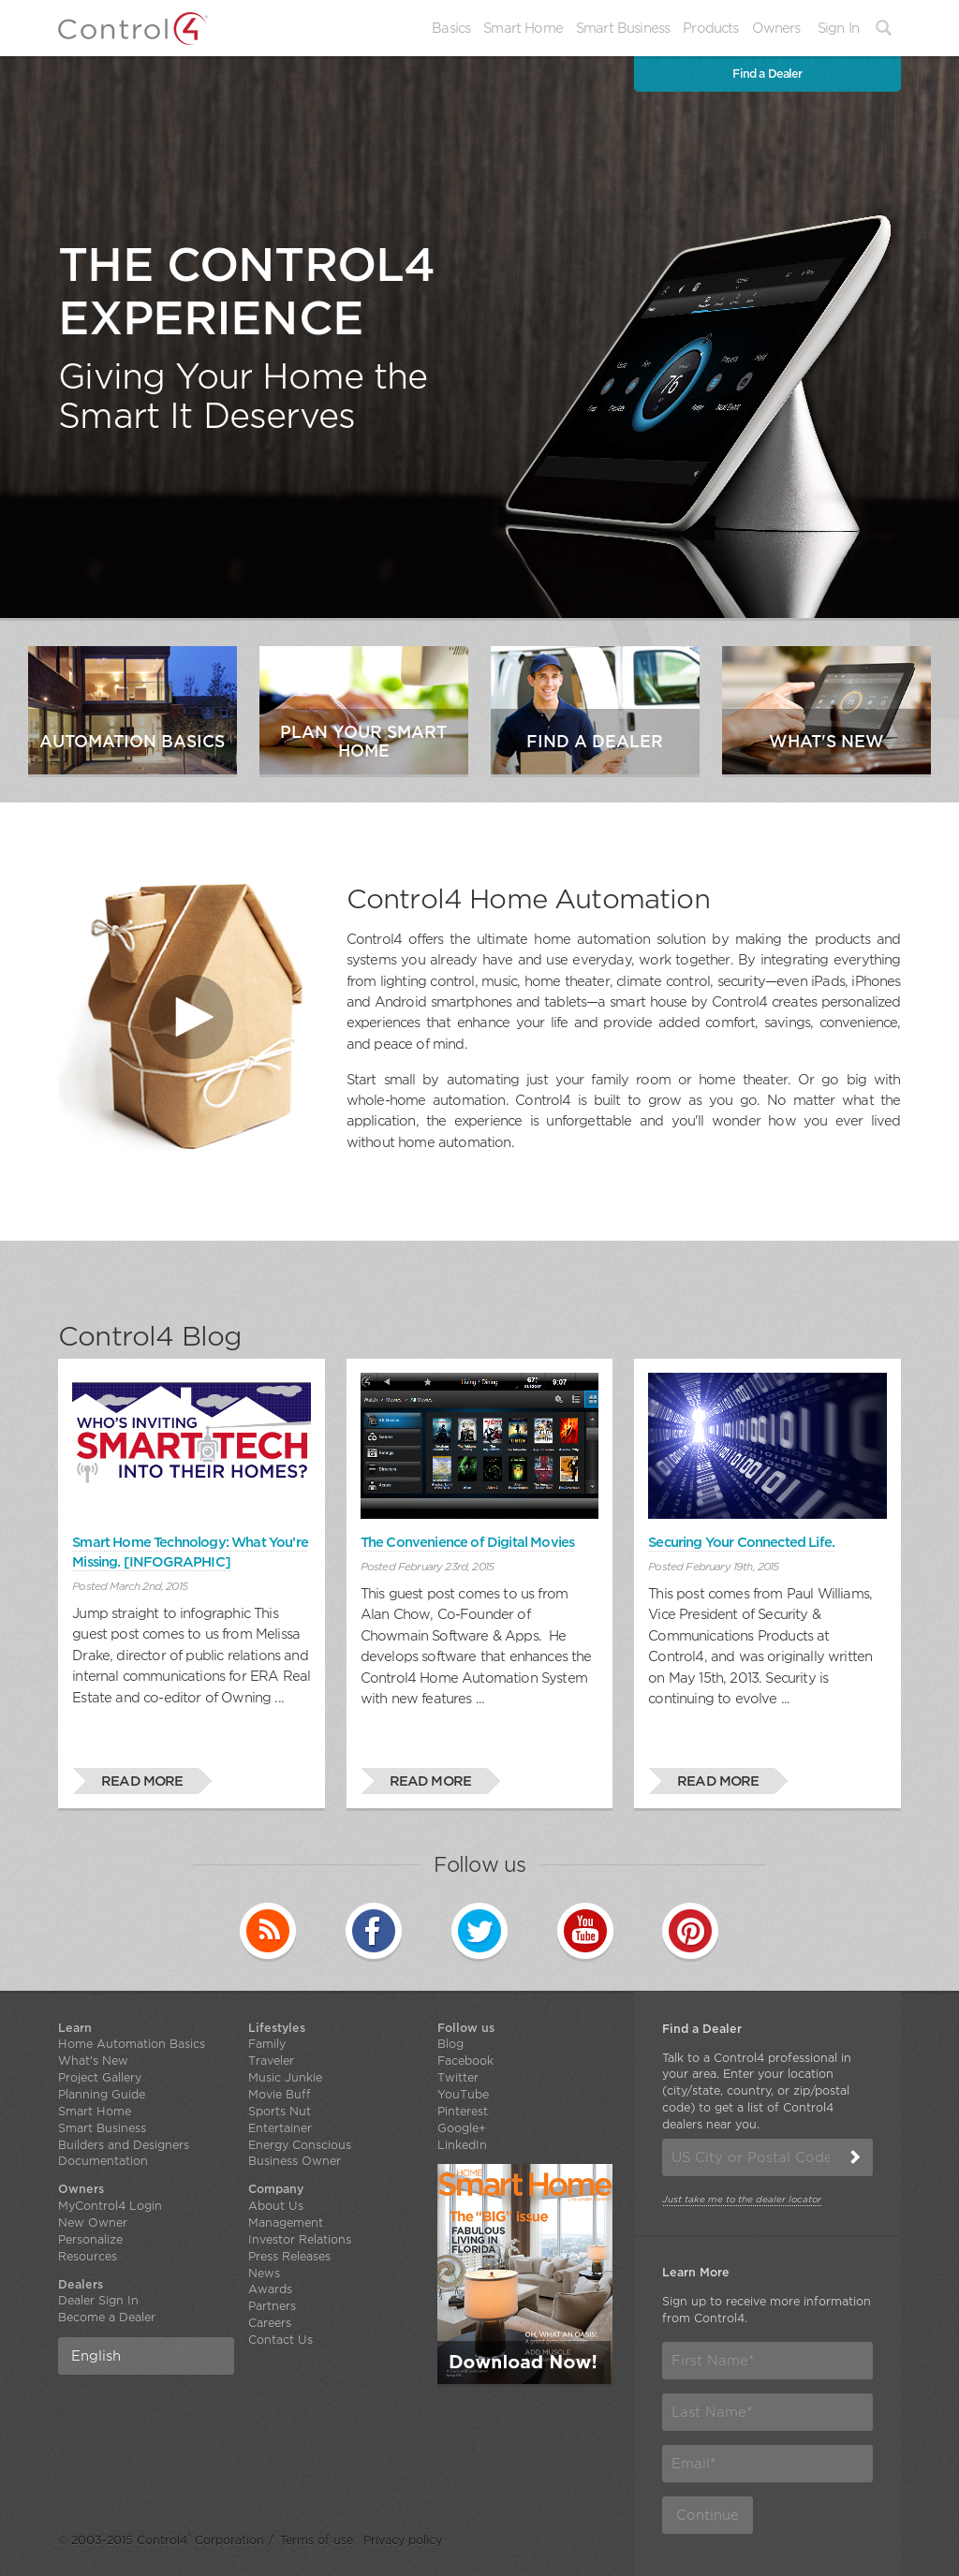 Control4 Competitors, Revenue and Employees - Owler Company